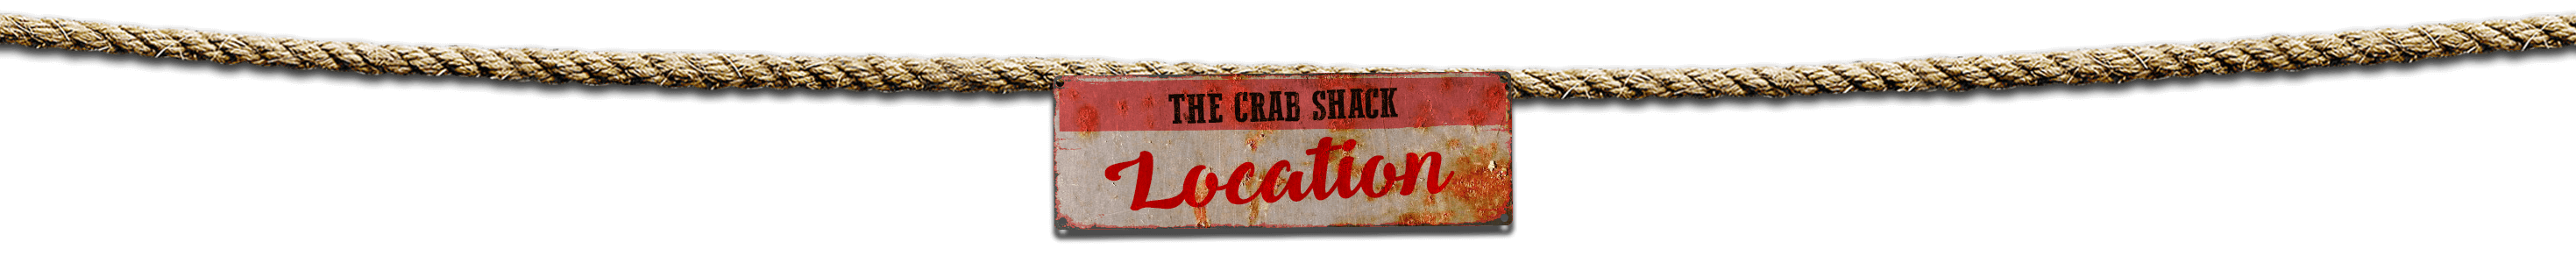 location-the-crab-shack